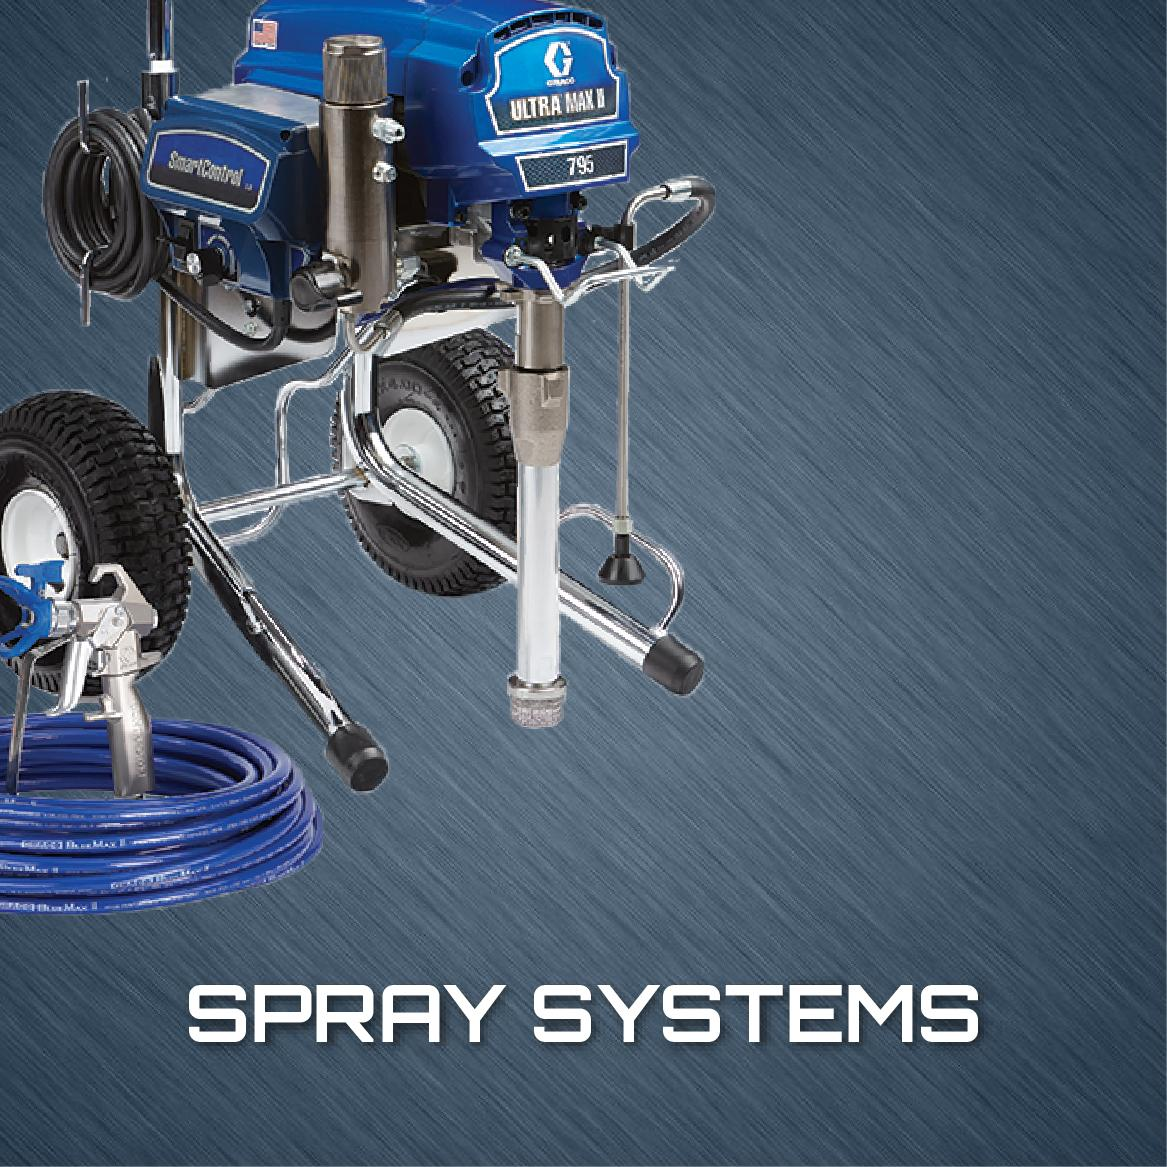 Spray Systems